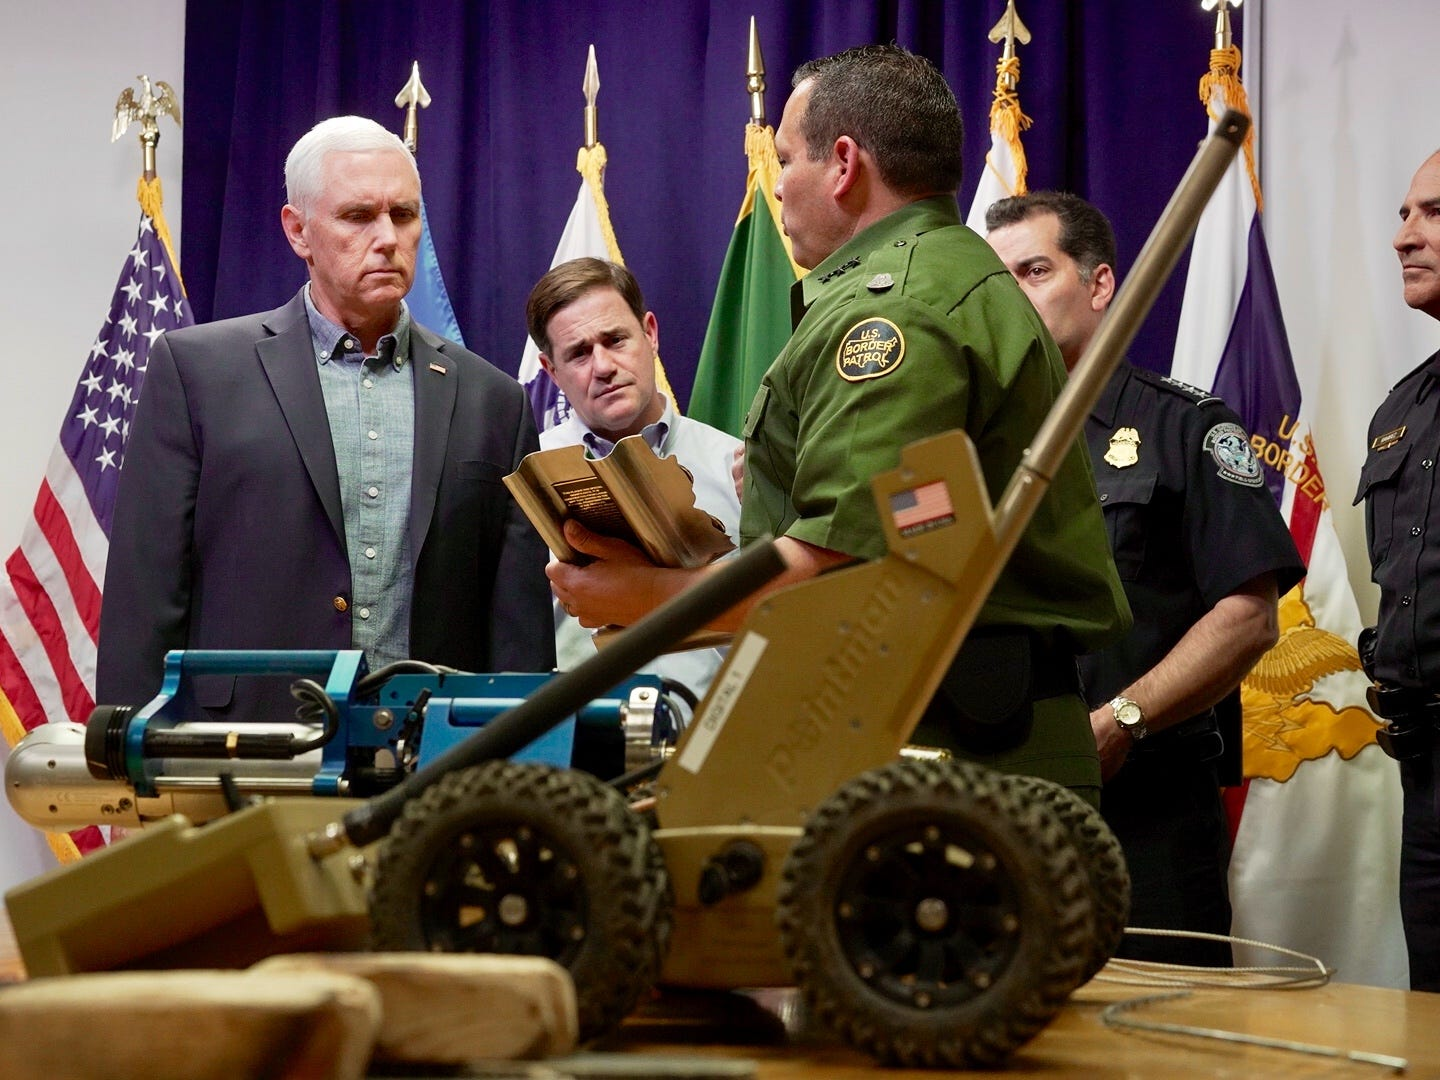 Vice President Mike Pence makes his second visit to Arizona in 2 months on April 11, 2019, to meet with border officials and tour sections of the border fence in Nogales. He is joined by Arizona Gov. Doug Ducey and Border Patrol officials.